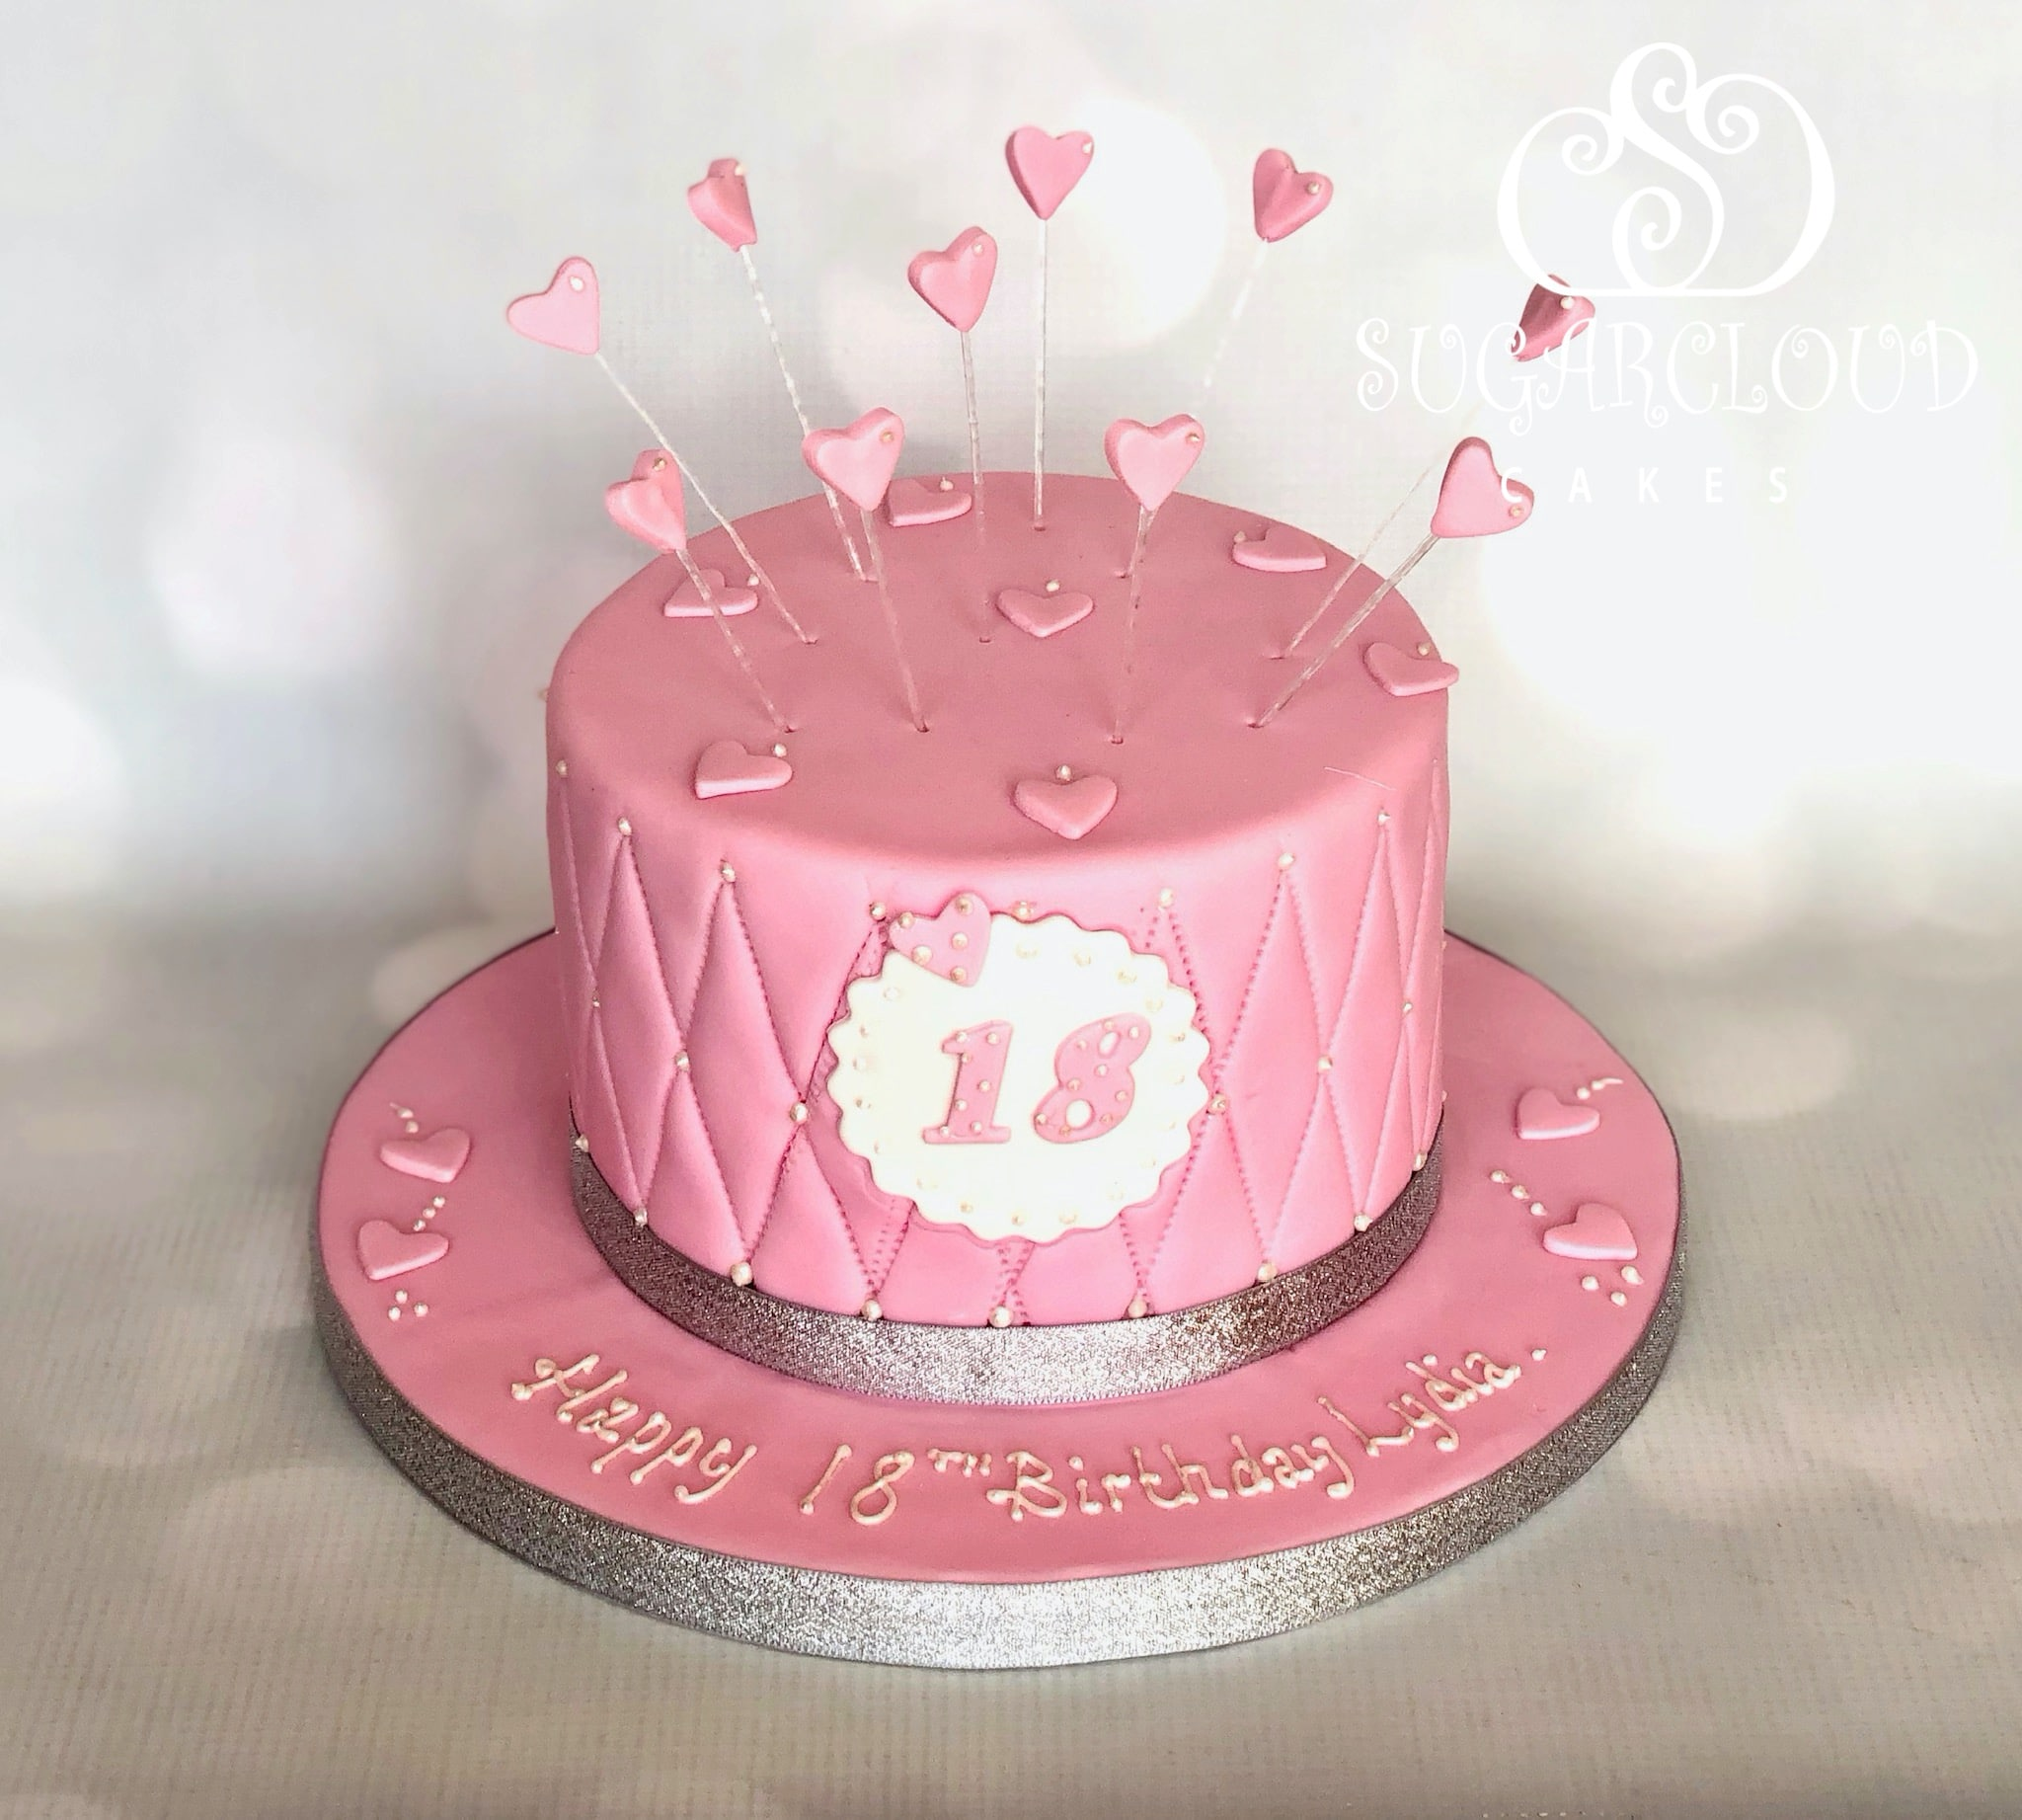 A Pink Heart Themed Quilted 18th Birthday Cake, Haslington